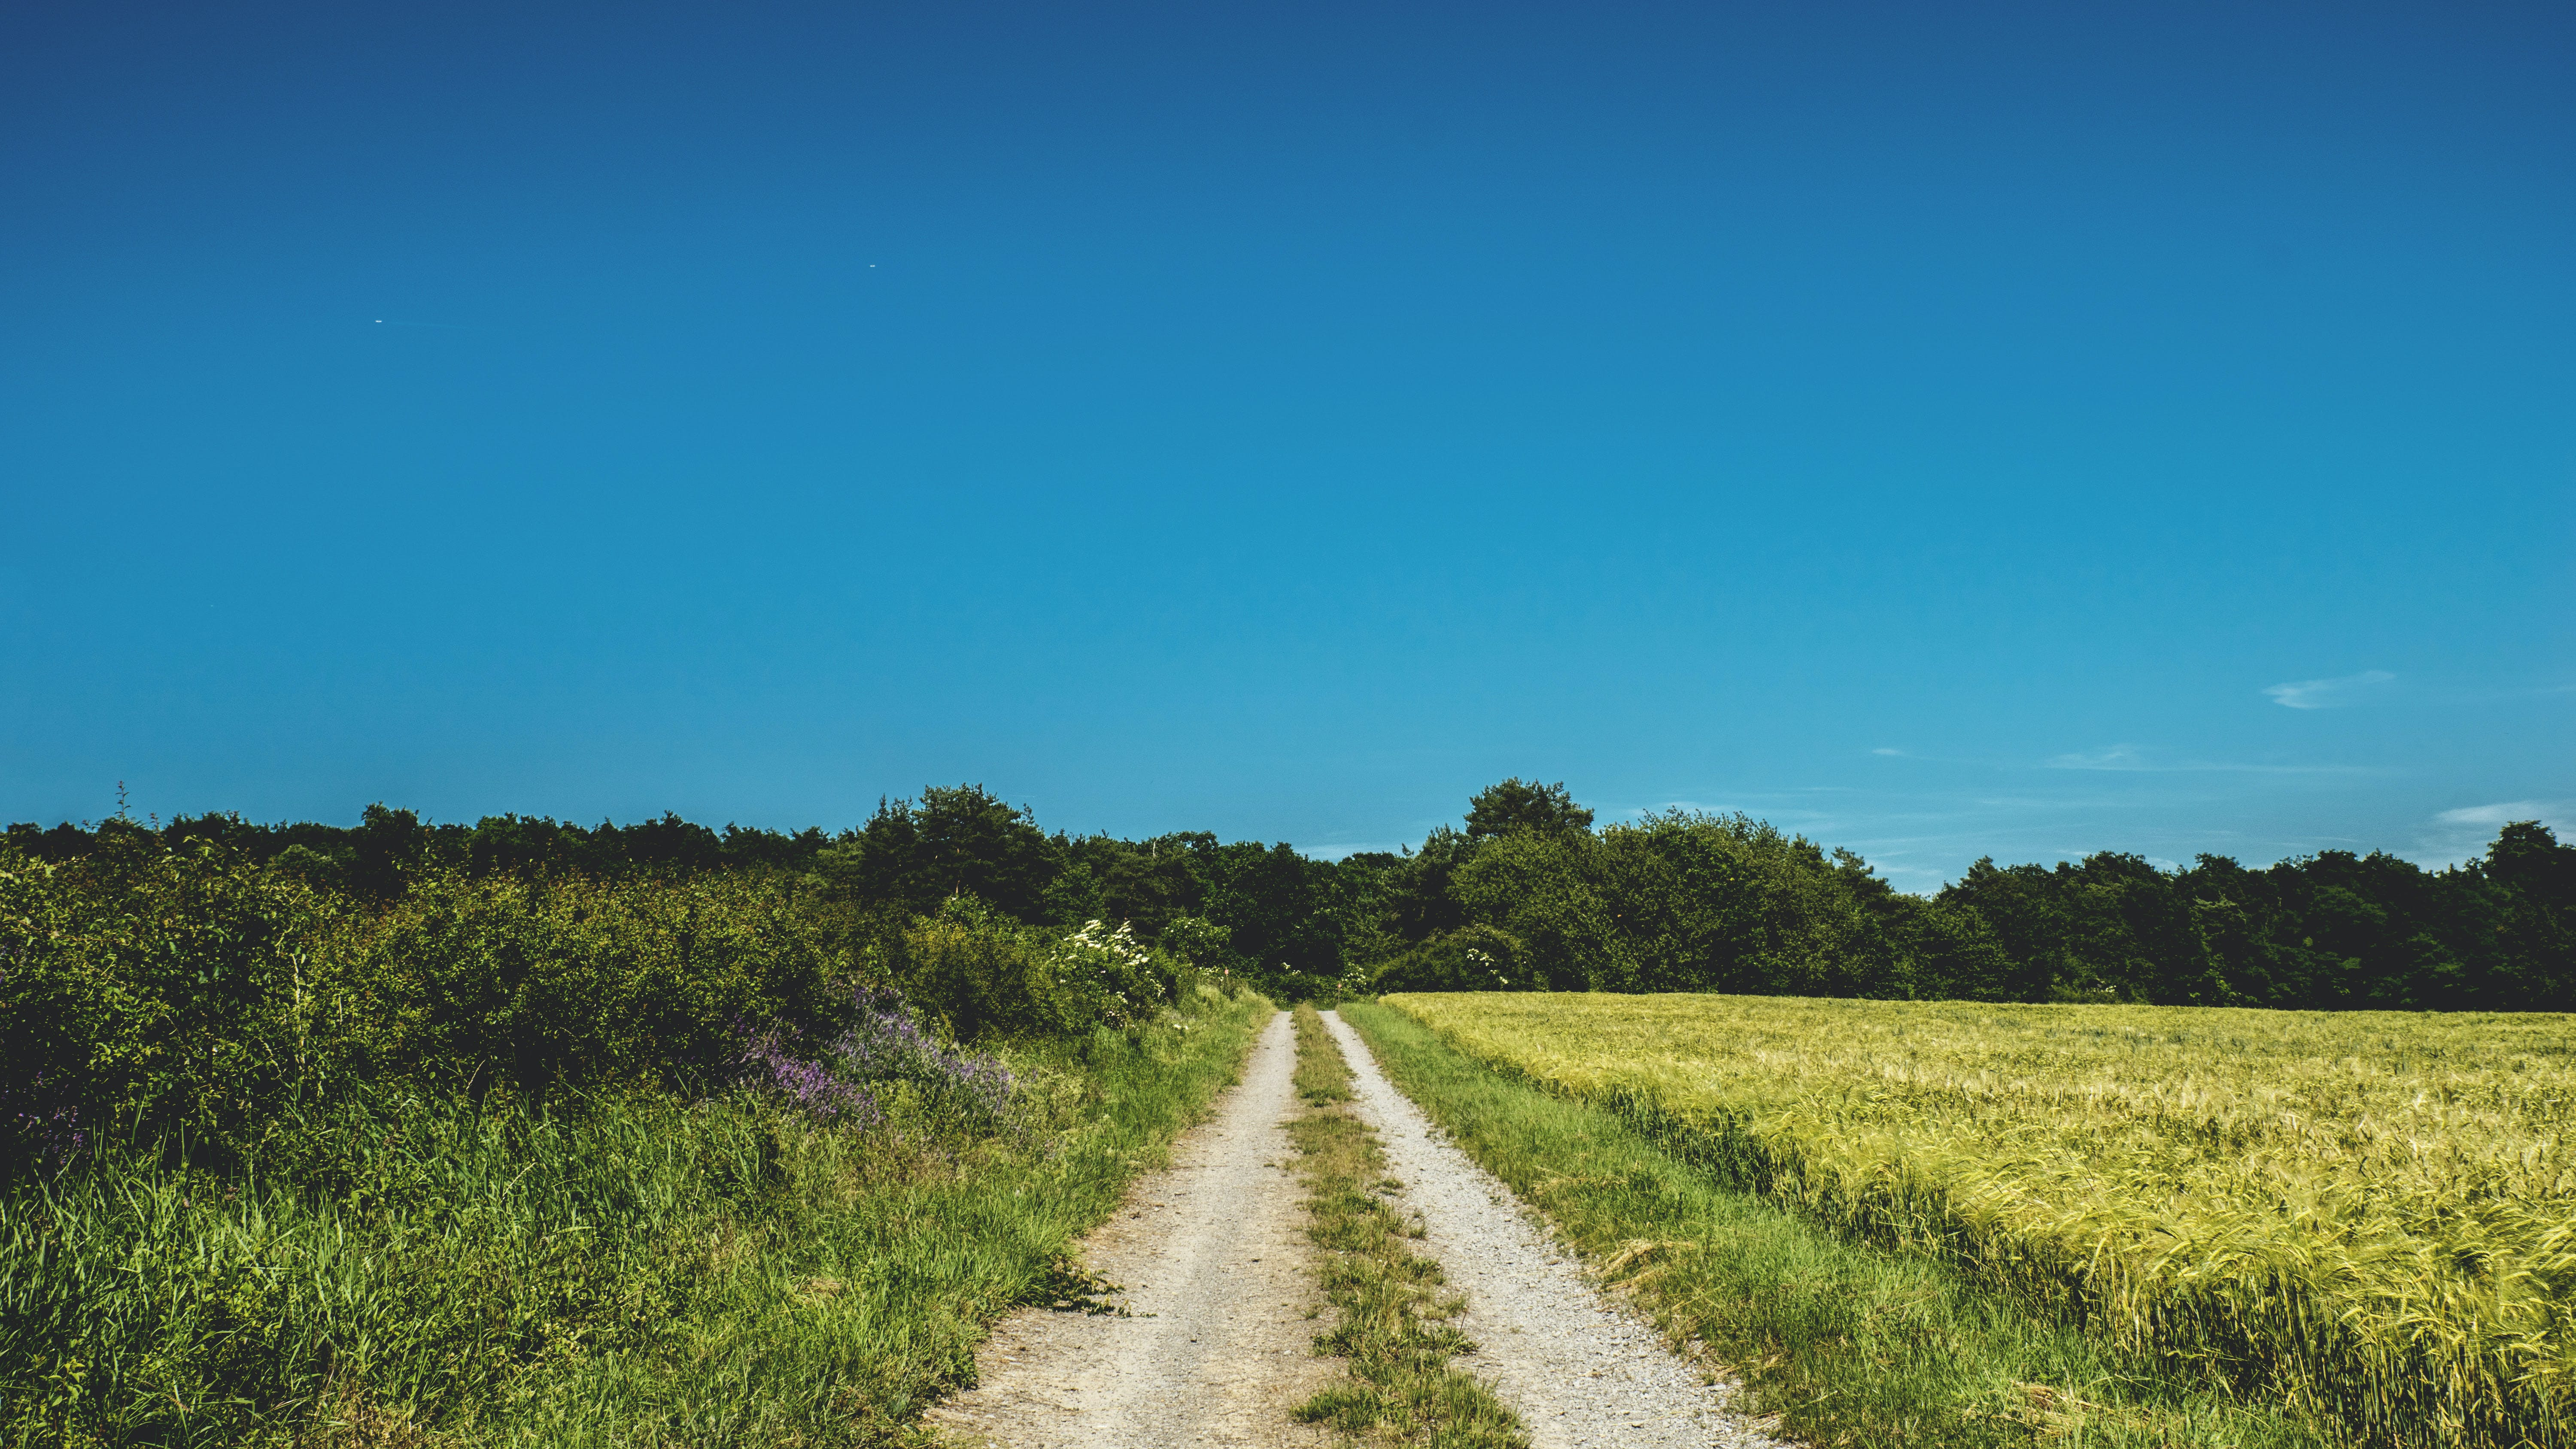 Free stock photo of road, landscape, nature, sky